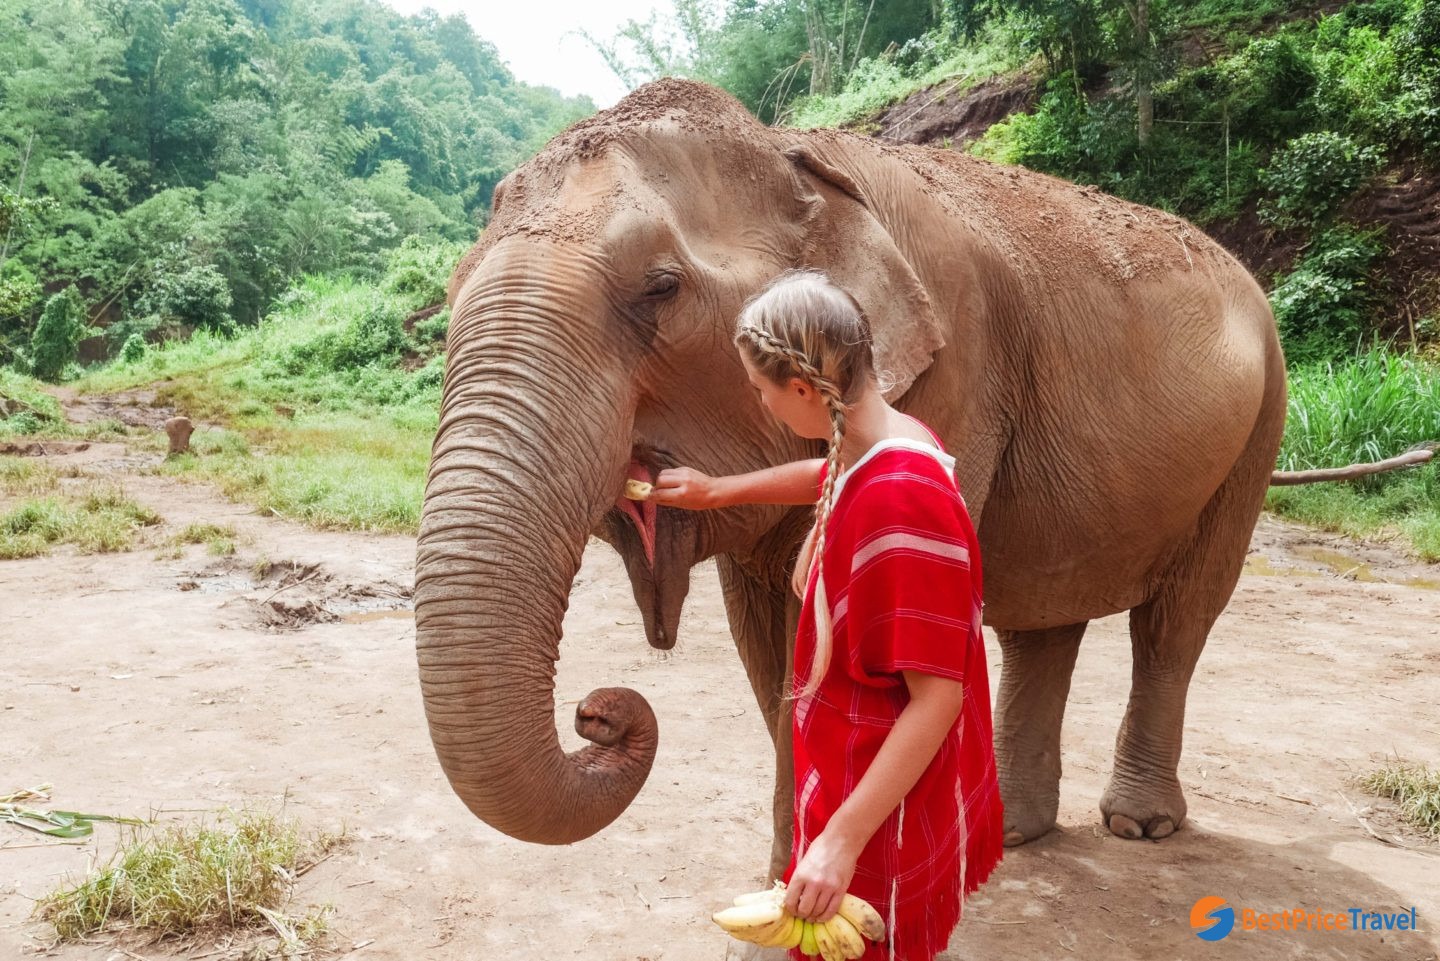 Feeding the elephants is the first step to get familiar with them